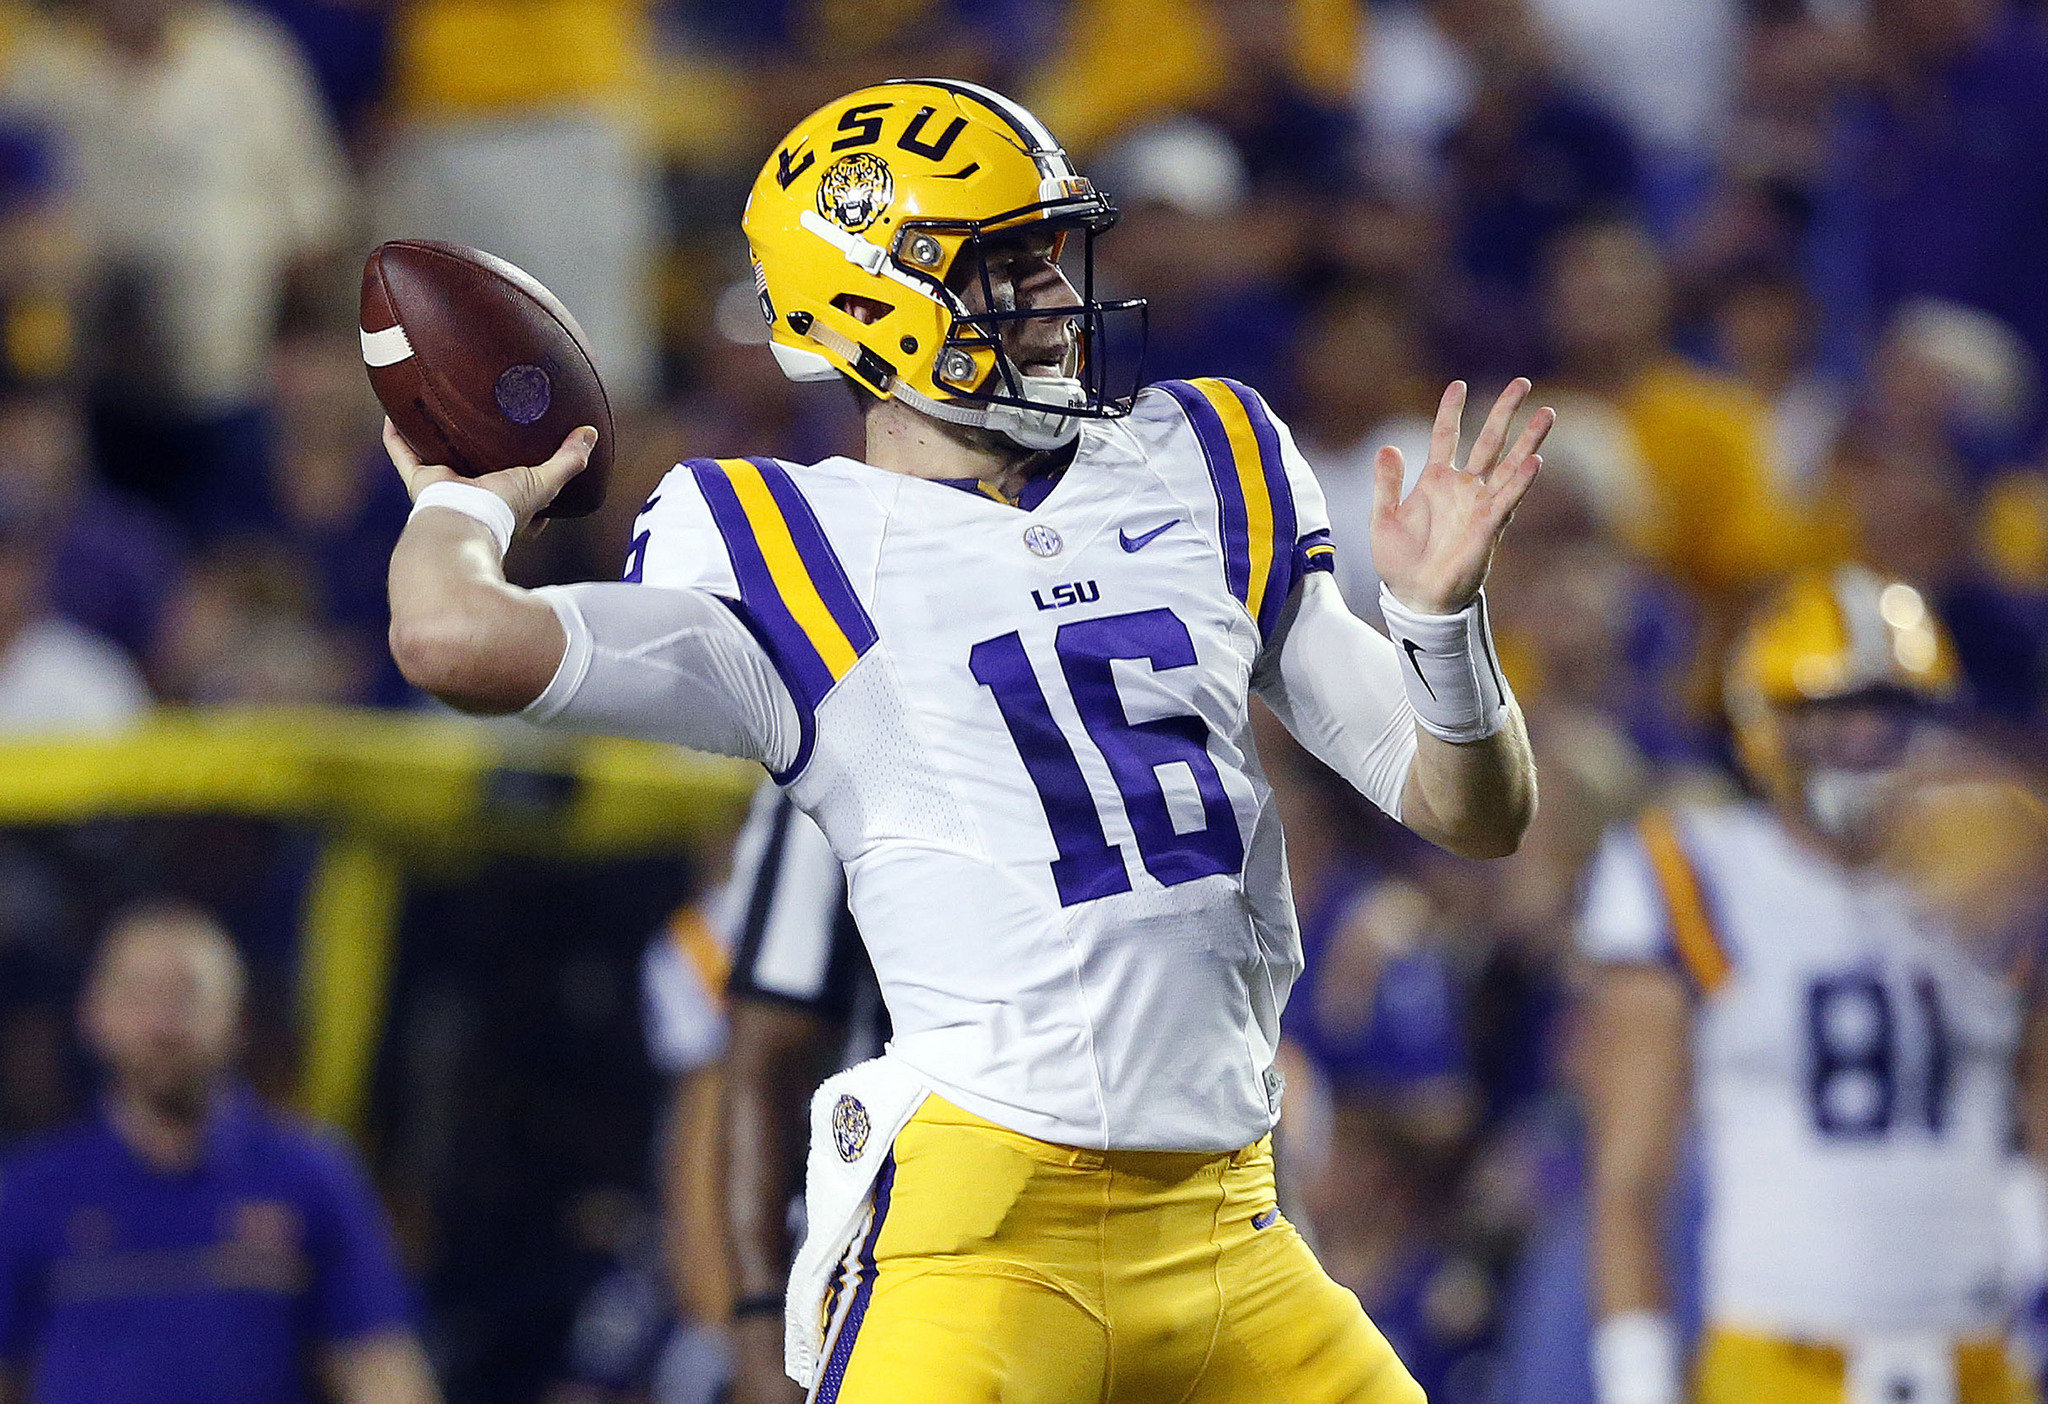 Danny Etling leads LSU to 34-13 win over Jacksonville State